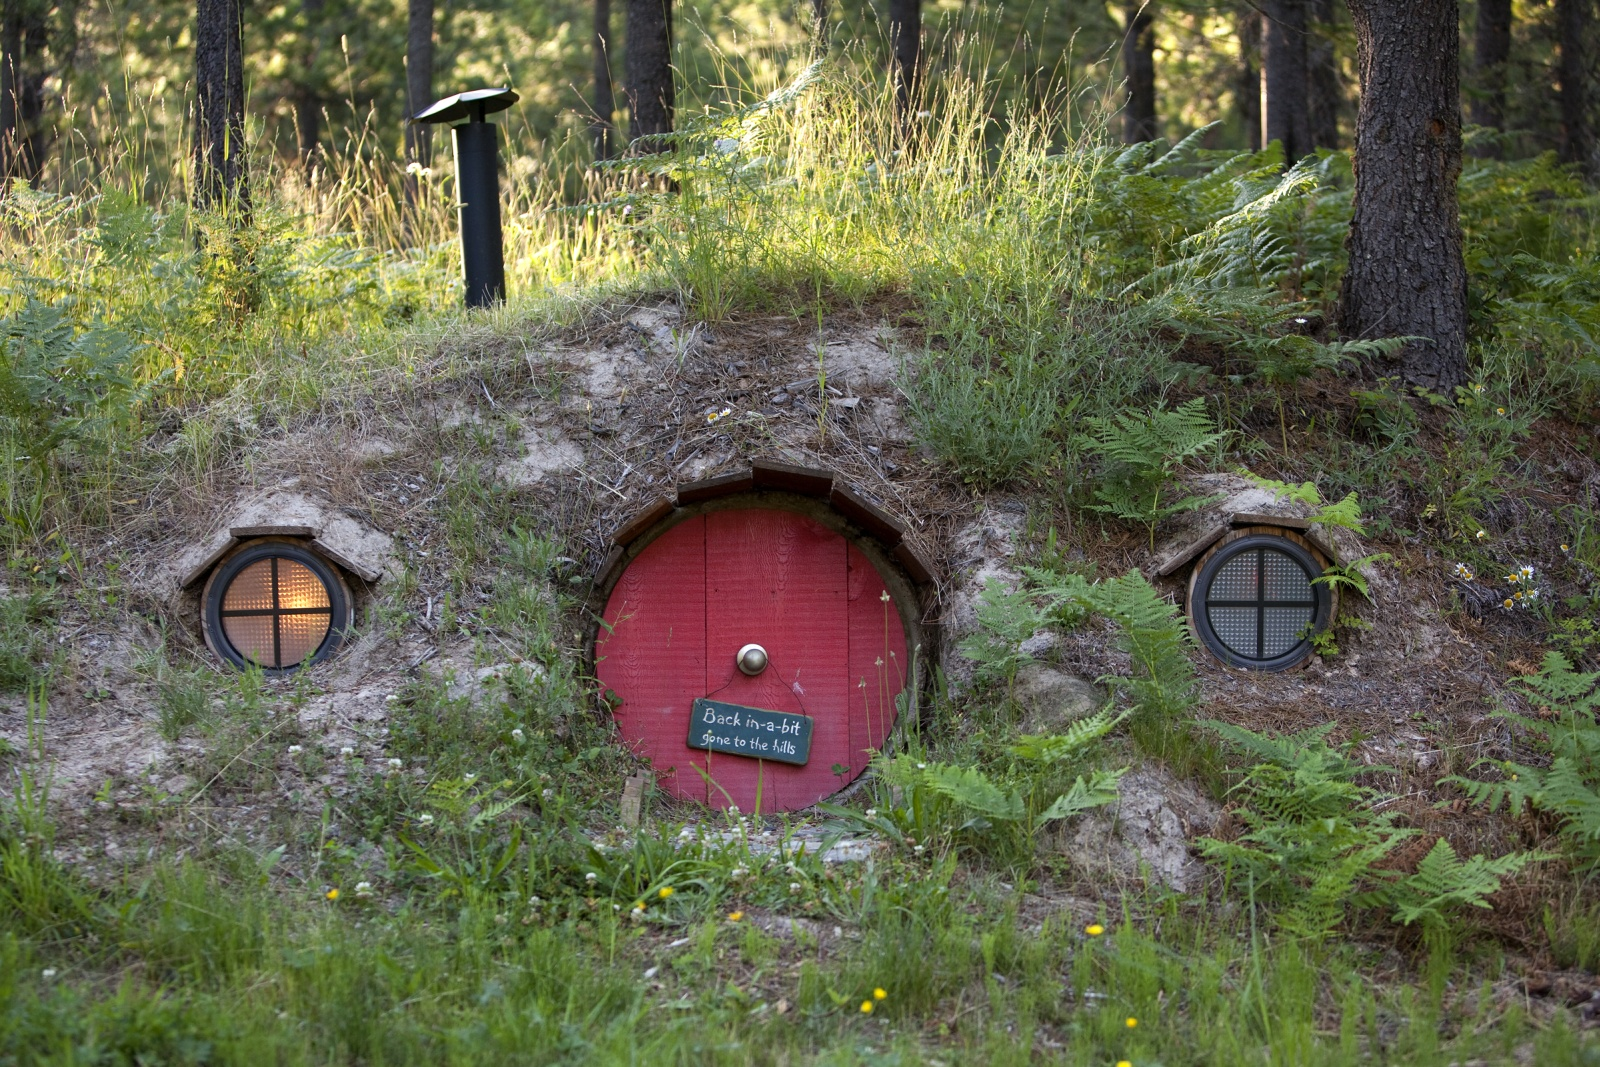 Hobbit house for Hobbit house images